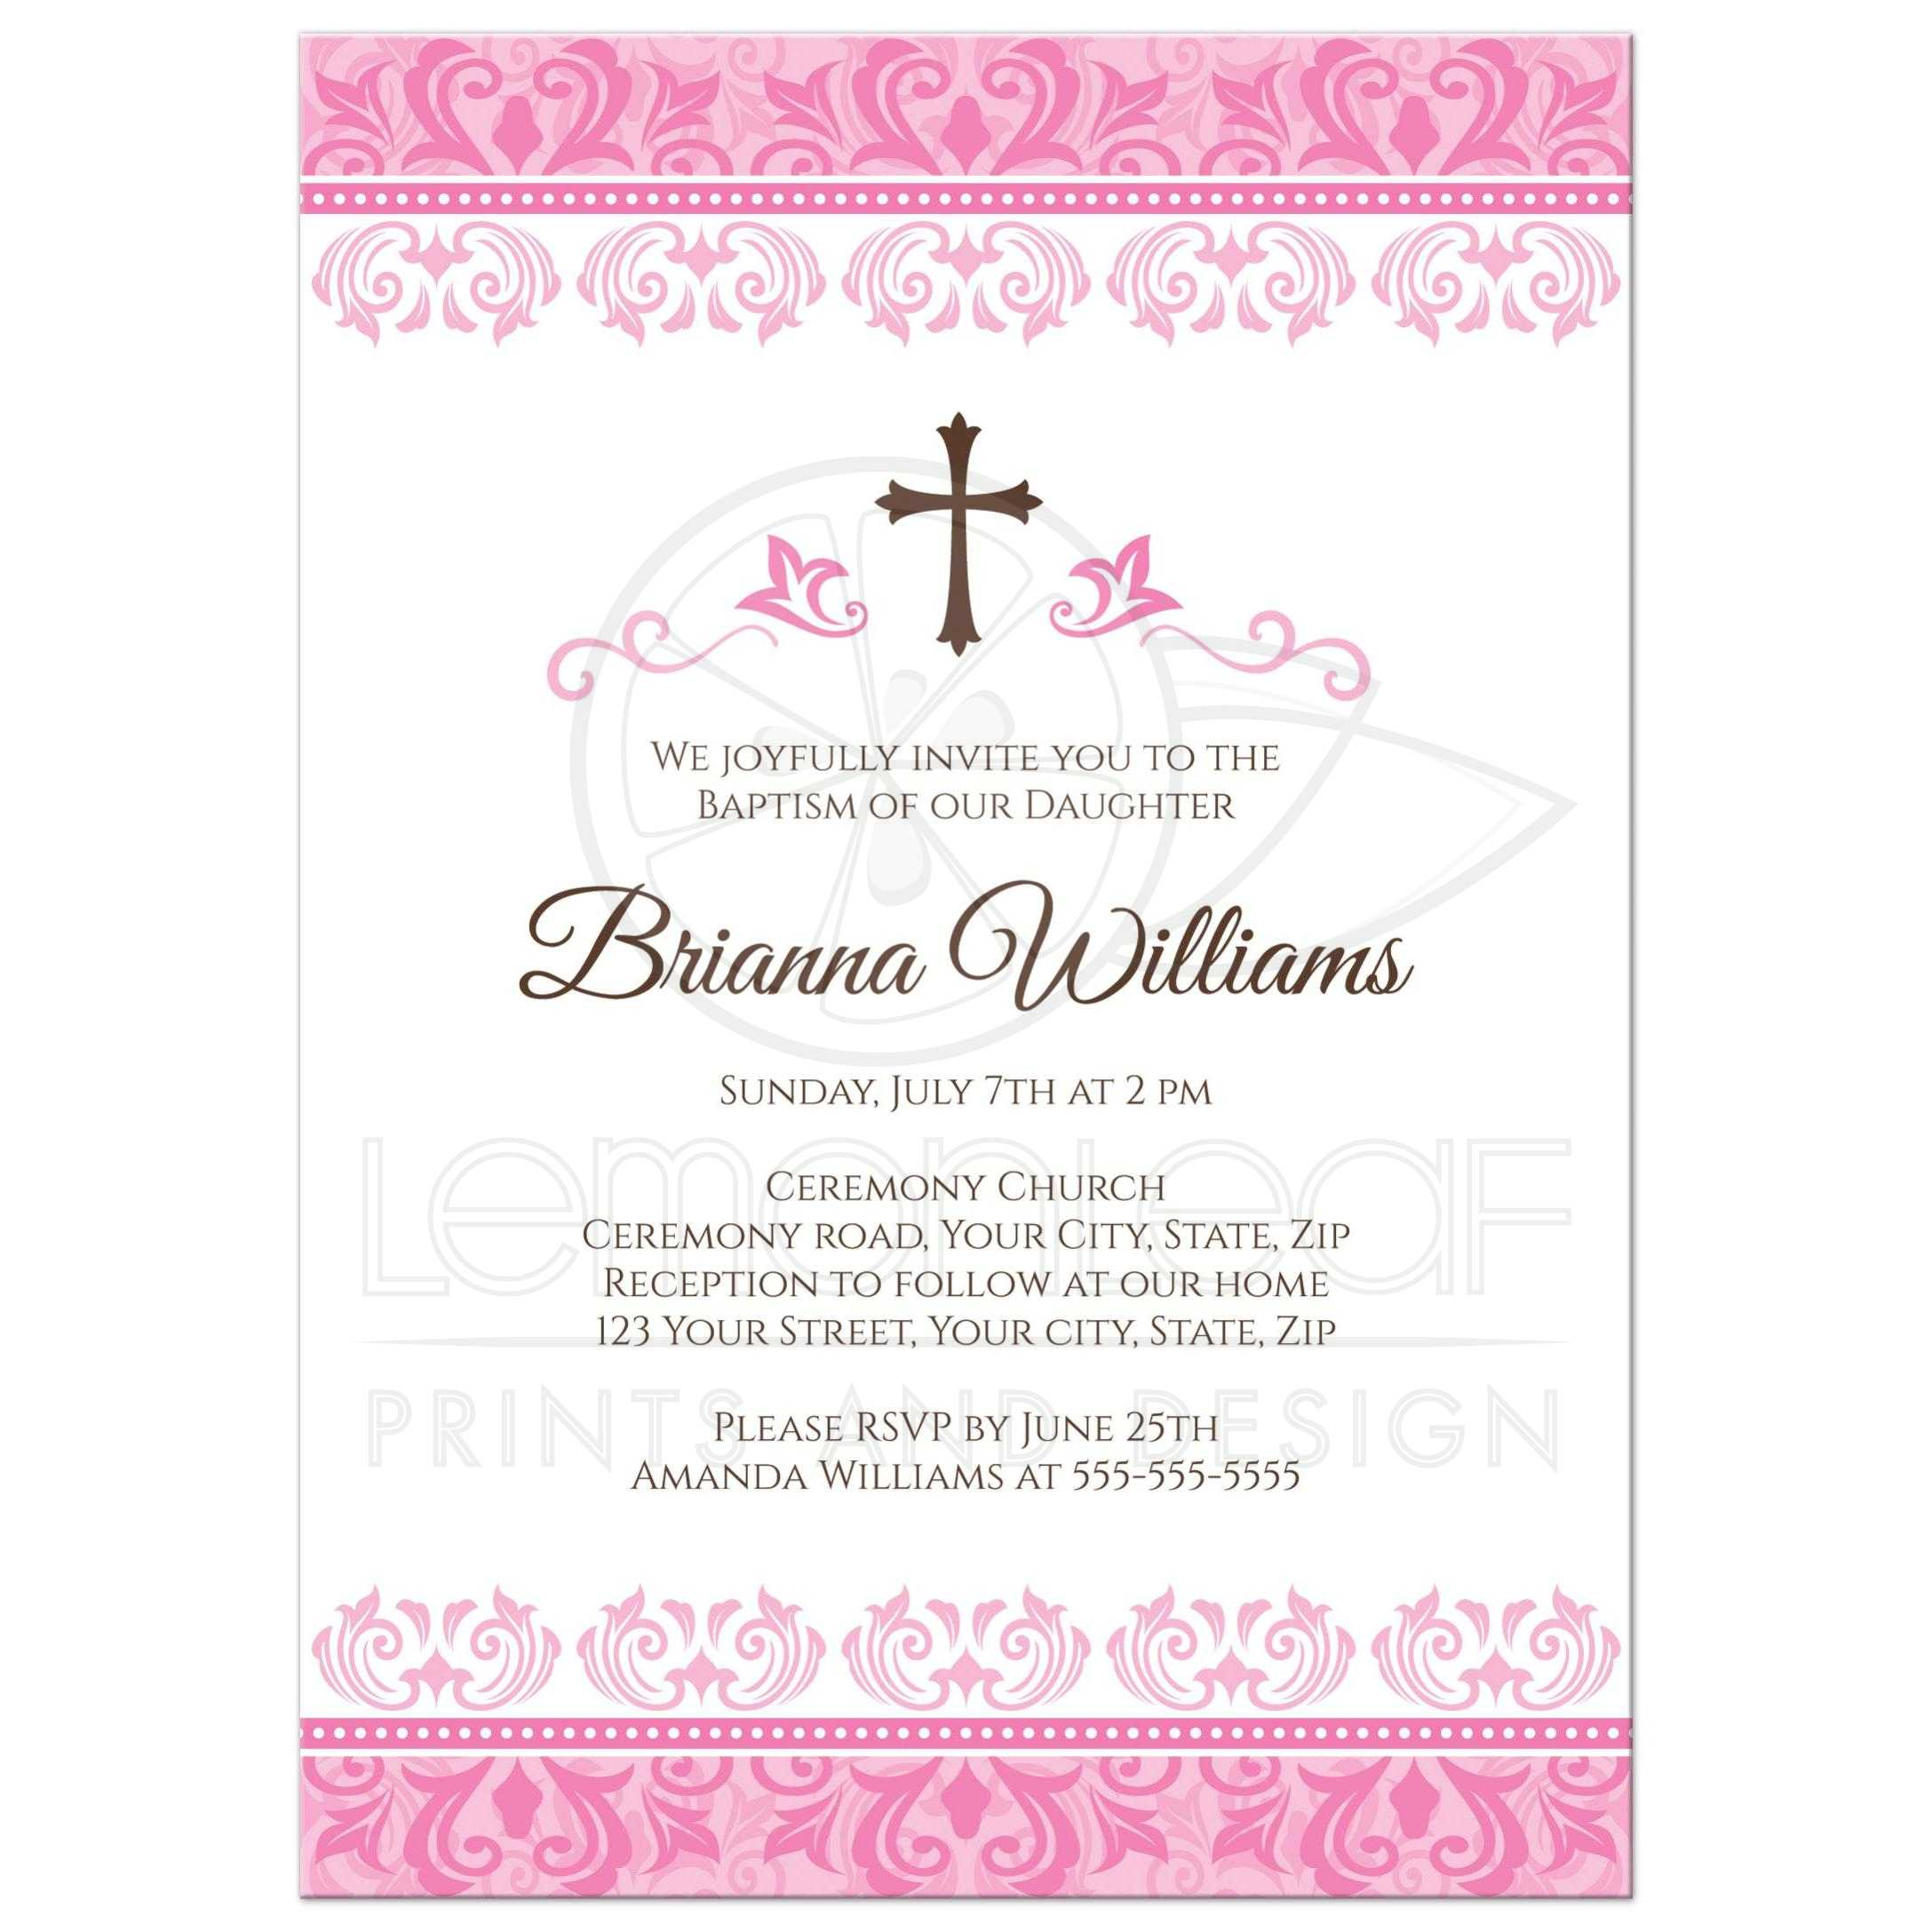 Cute Baby Shower Invitations For Girls as amazing invitation ideas